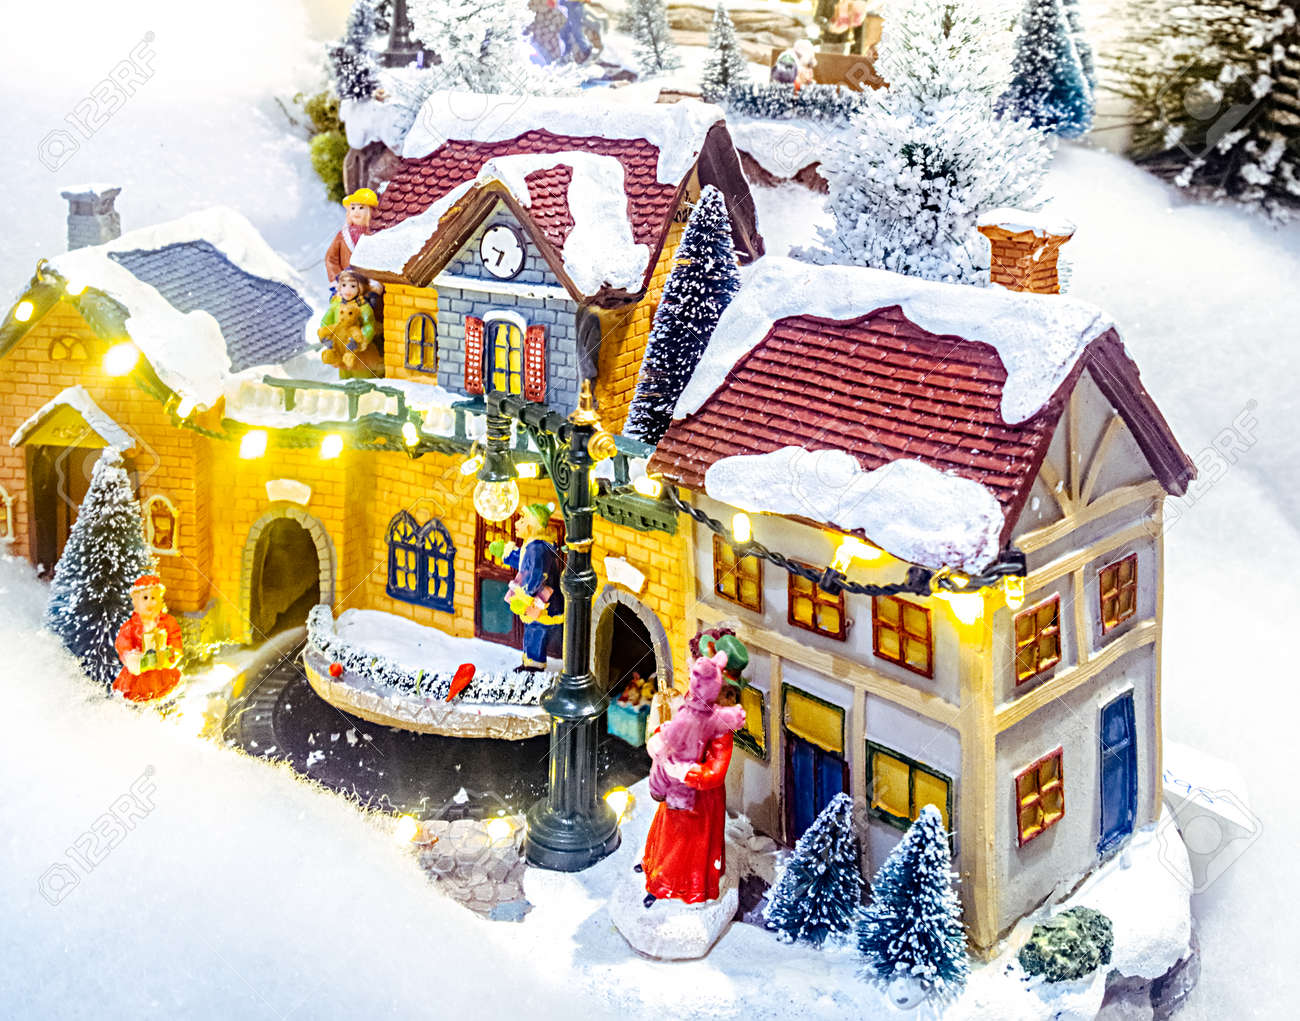 Miniature Christmas Village Scene Christmas Decorations Toys Stock